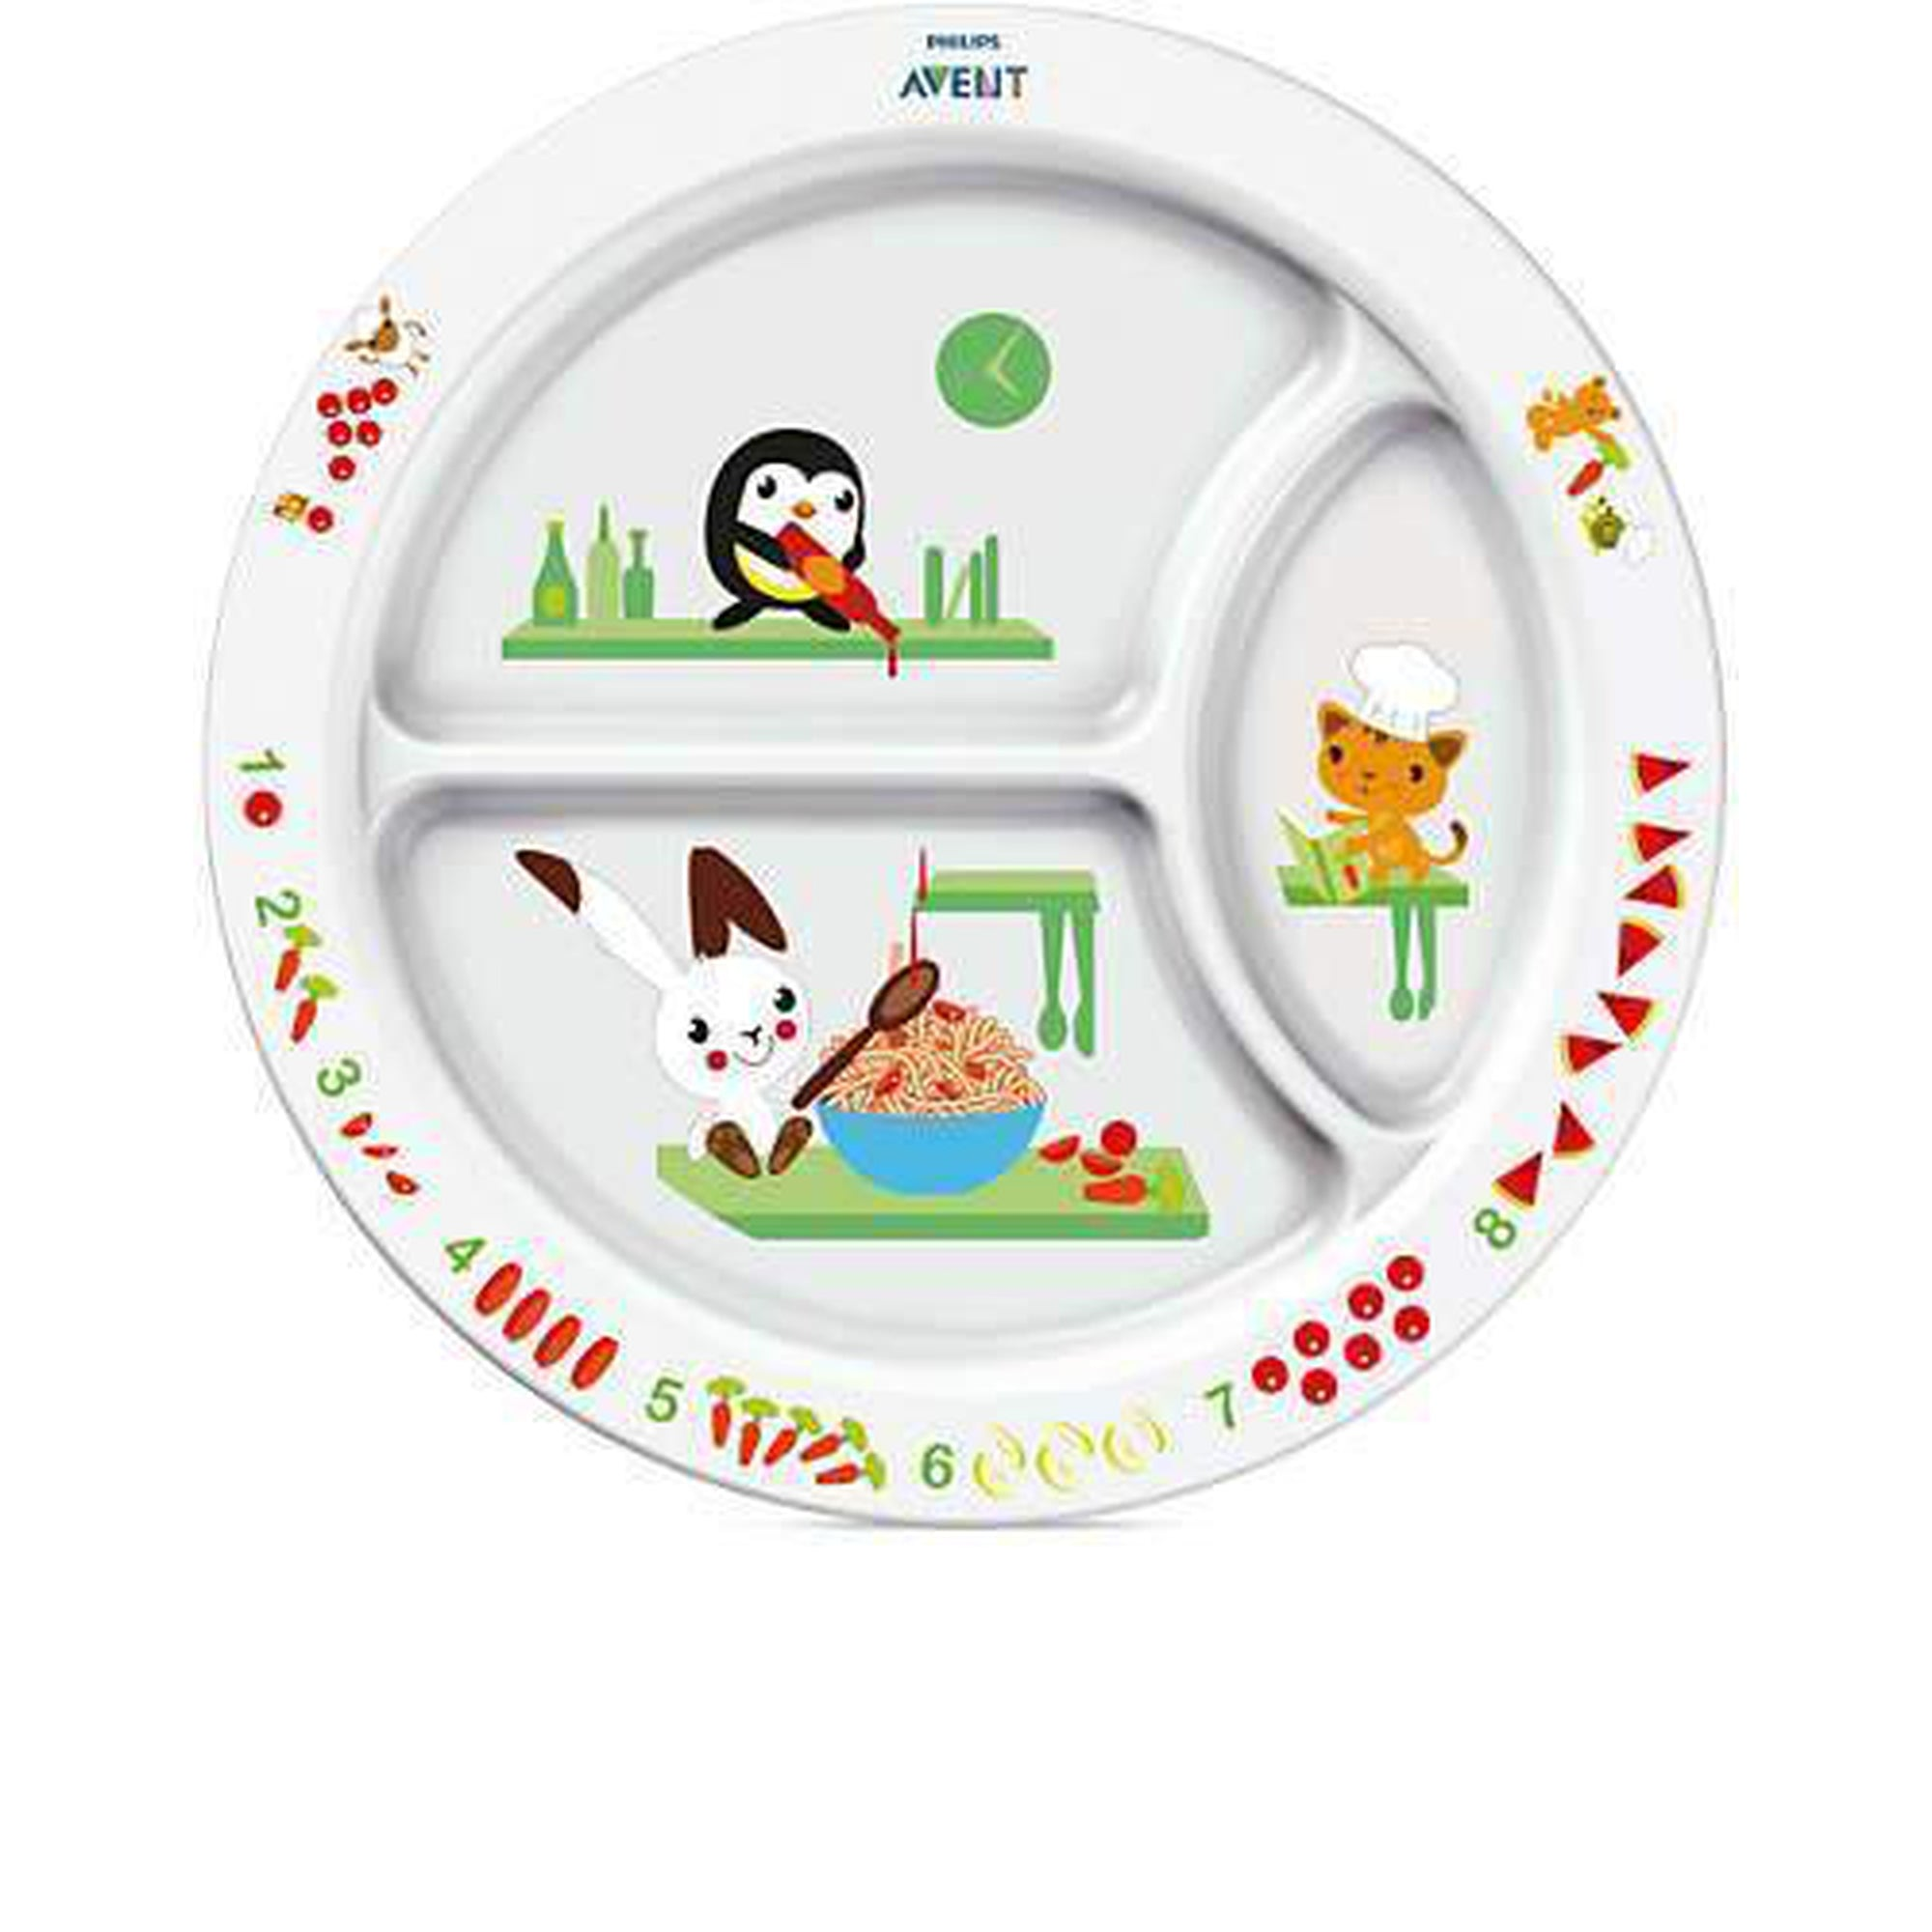 Avent Toddler Divider Plate 12M-Tableware Cutlery and Bibs-Mother and Baby Shop Kenya's #1 Online Baby Shop